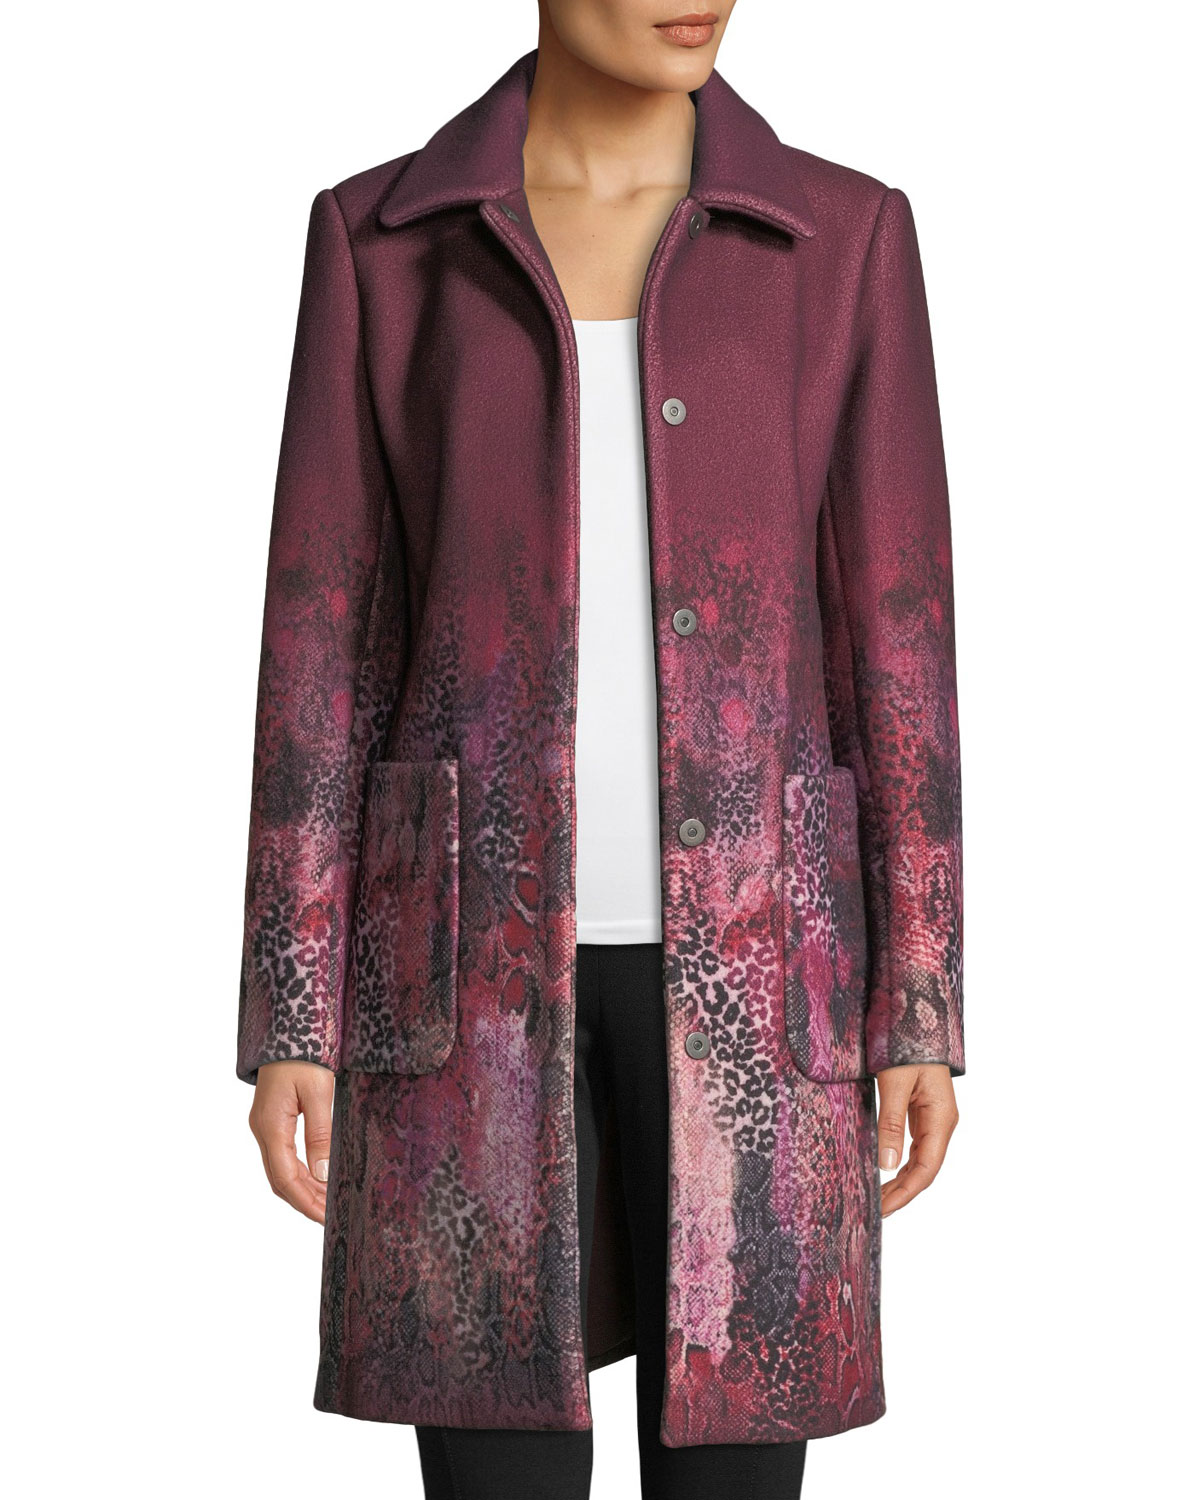 TINDRA SINGLE-BREASTED DEGRADE ANIMAL-PRINT WOOL-BLEND COAT